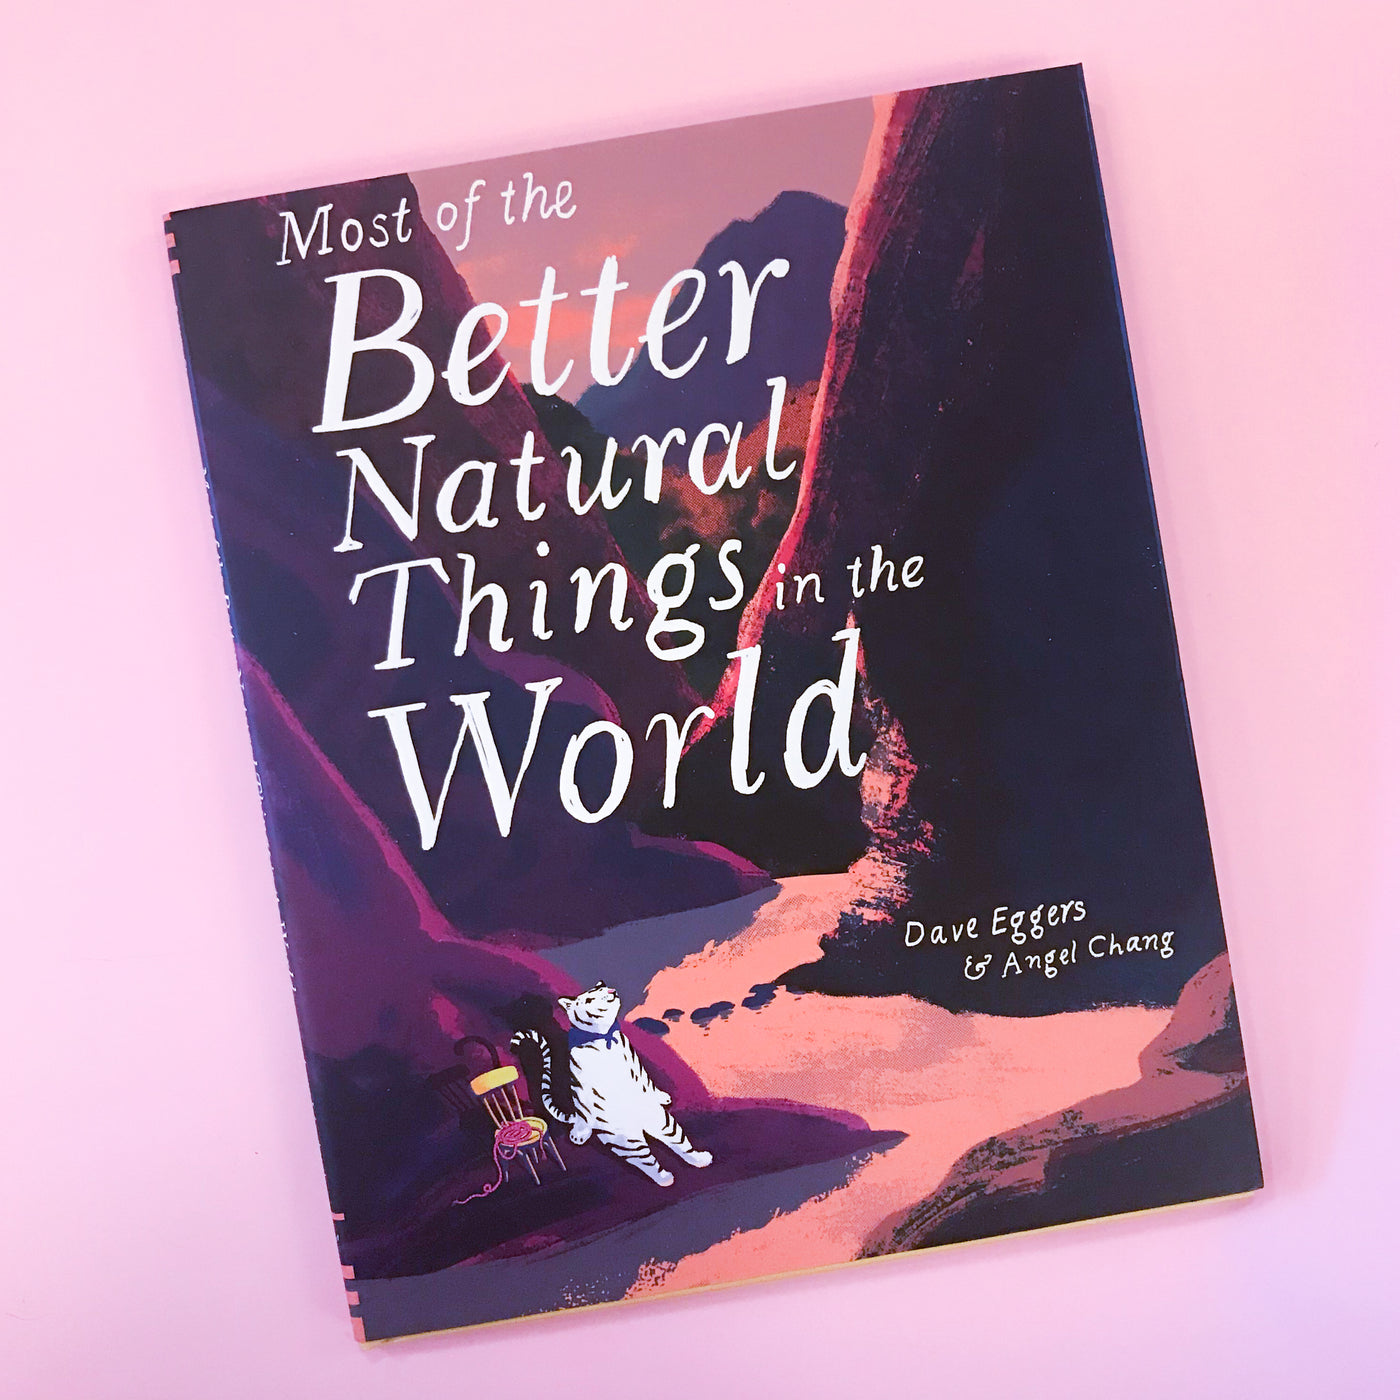 Most of the Better Natural Things in the World by Dave Eggers and Angel Chang